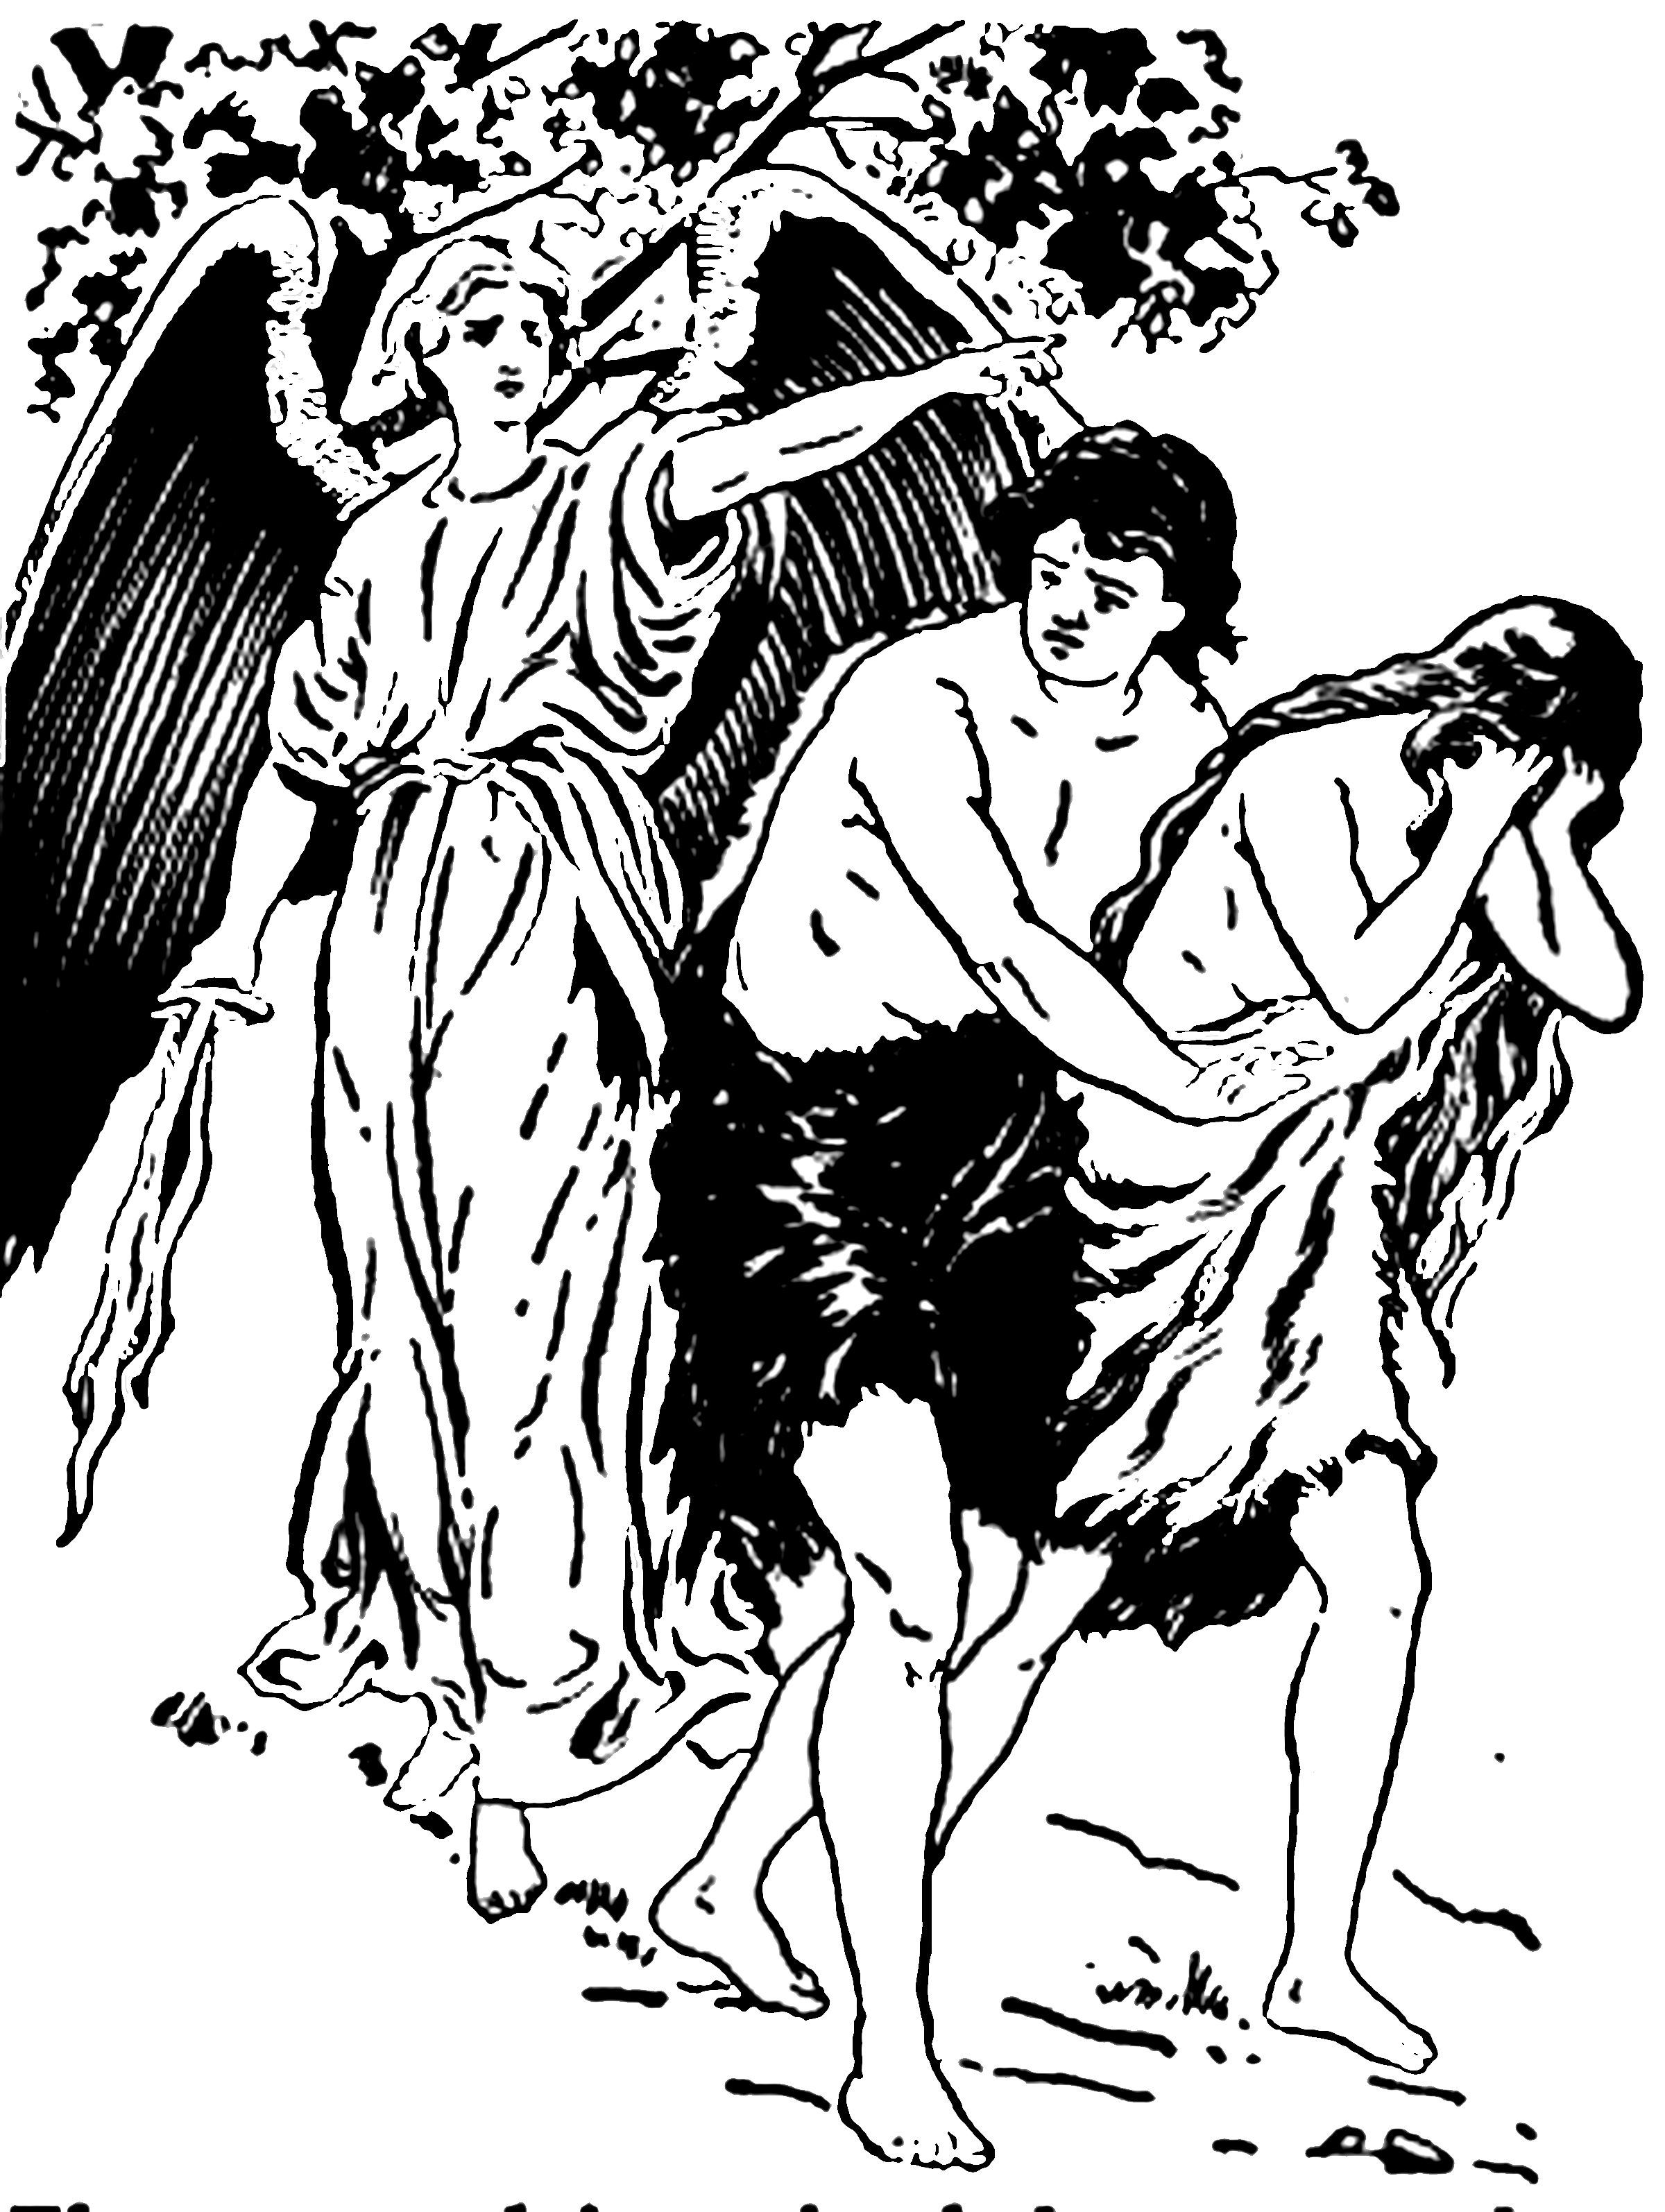 adam and eve coloring pages garden of eden - Adam Eve Story Coloring Pages